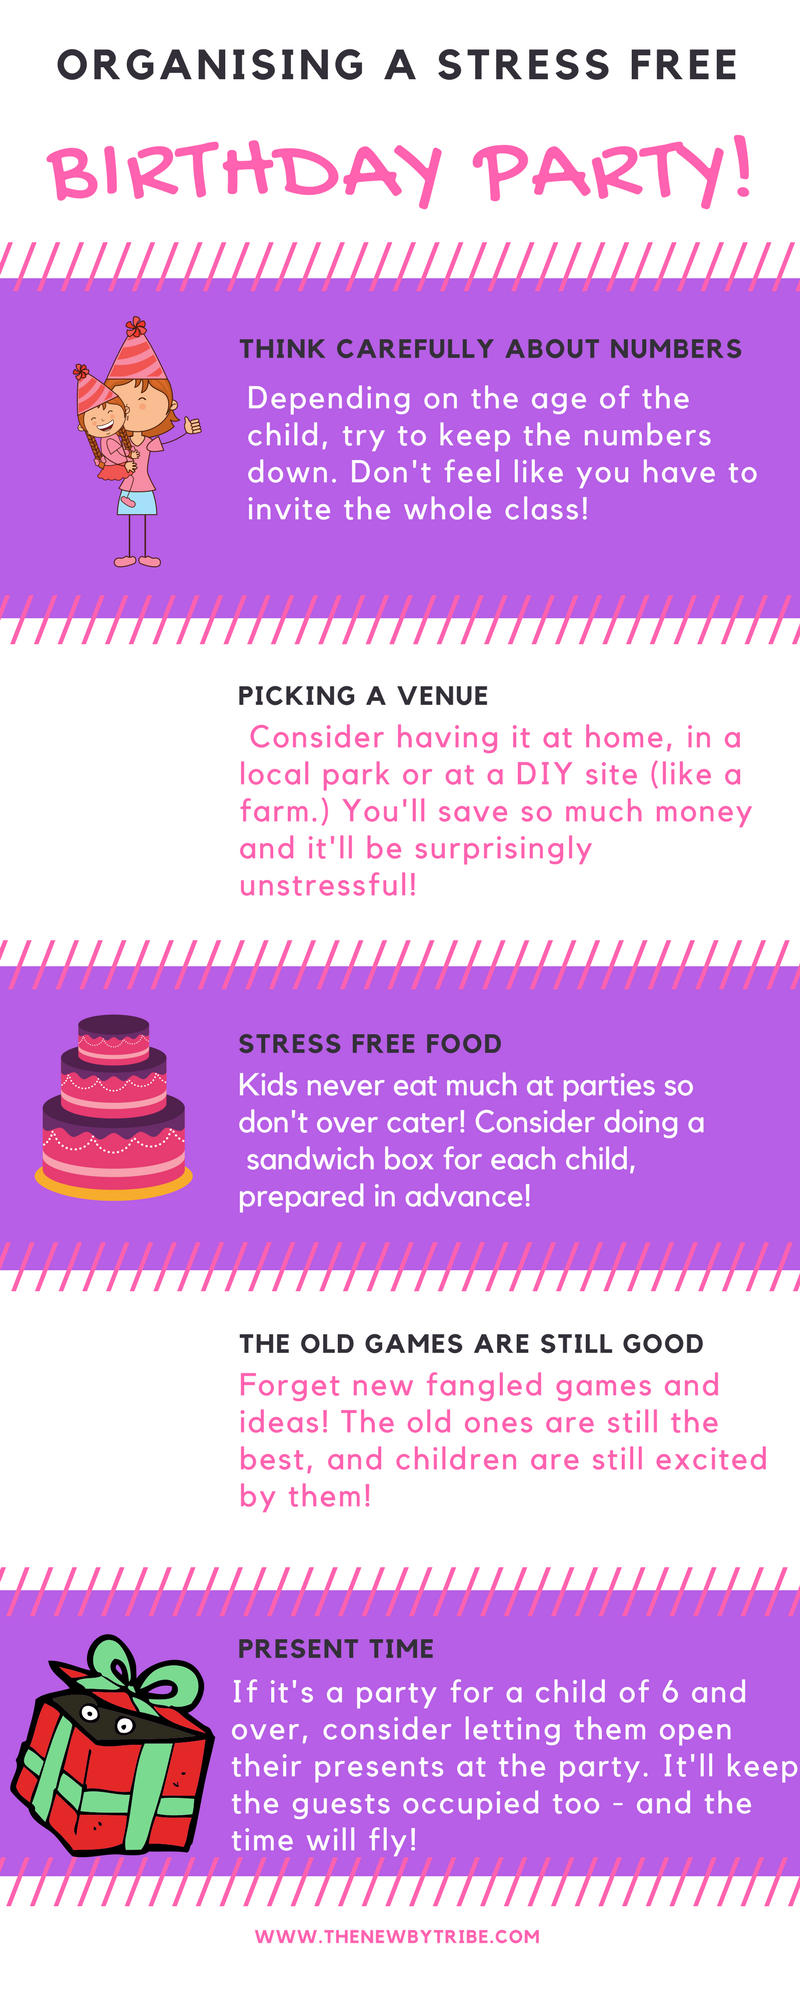 Organising a stress free birthday party